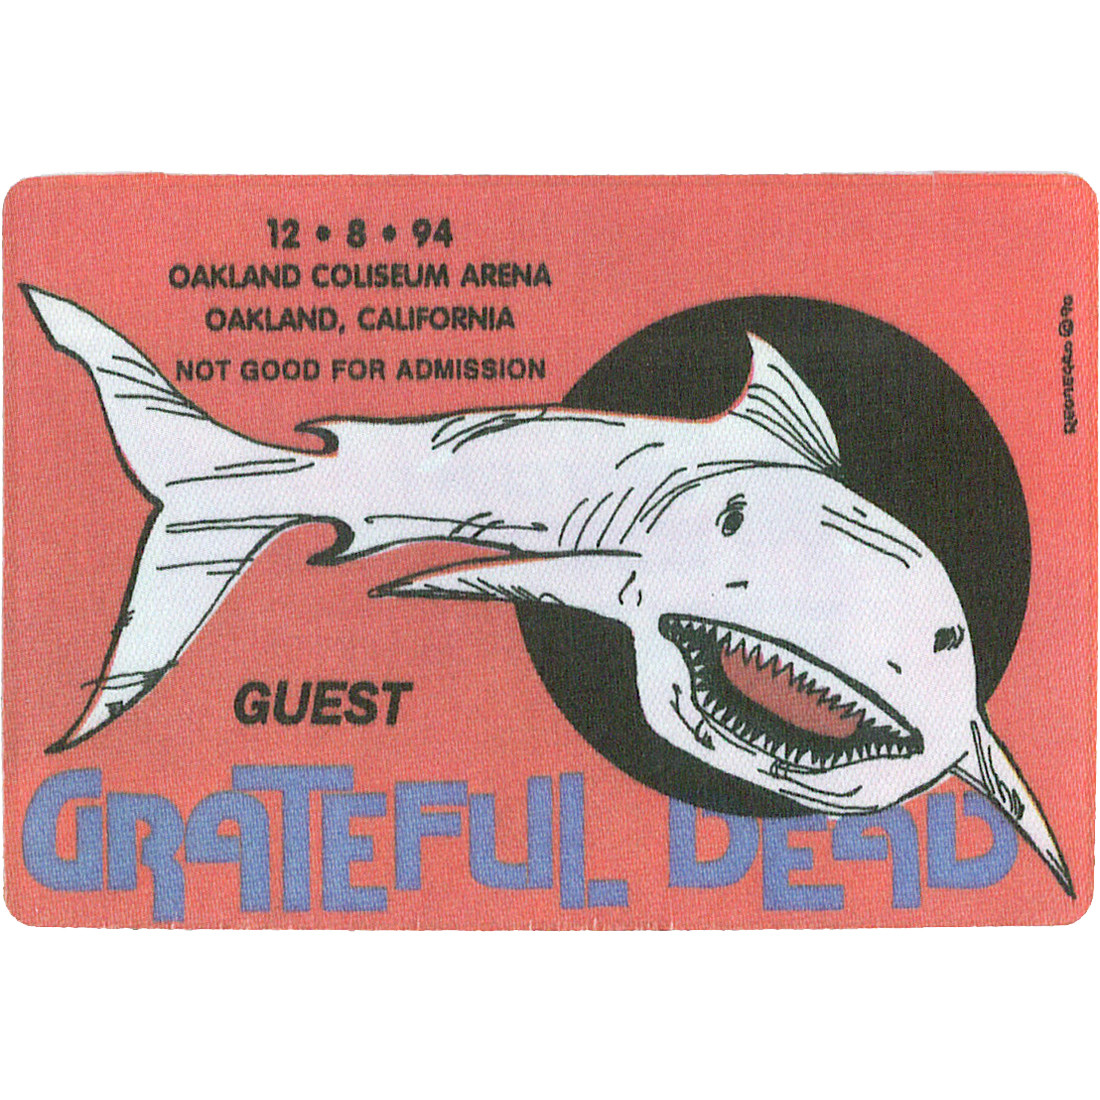 Grateful Dead 1994 12-08 Backstage Pass